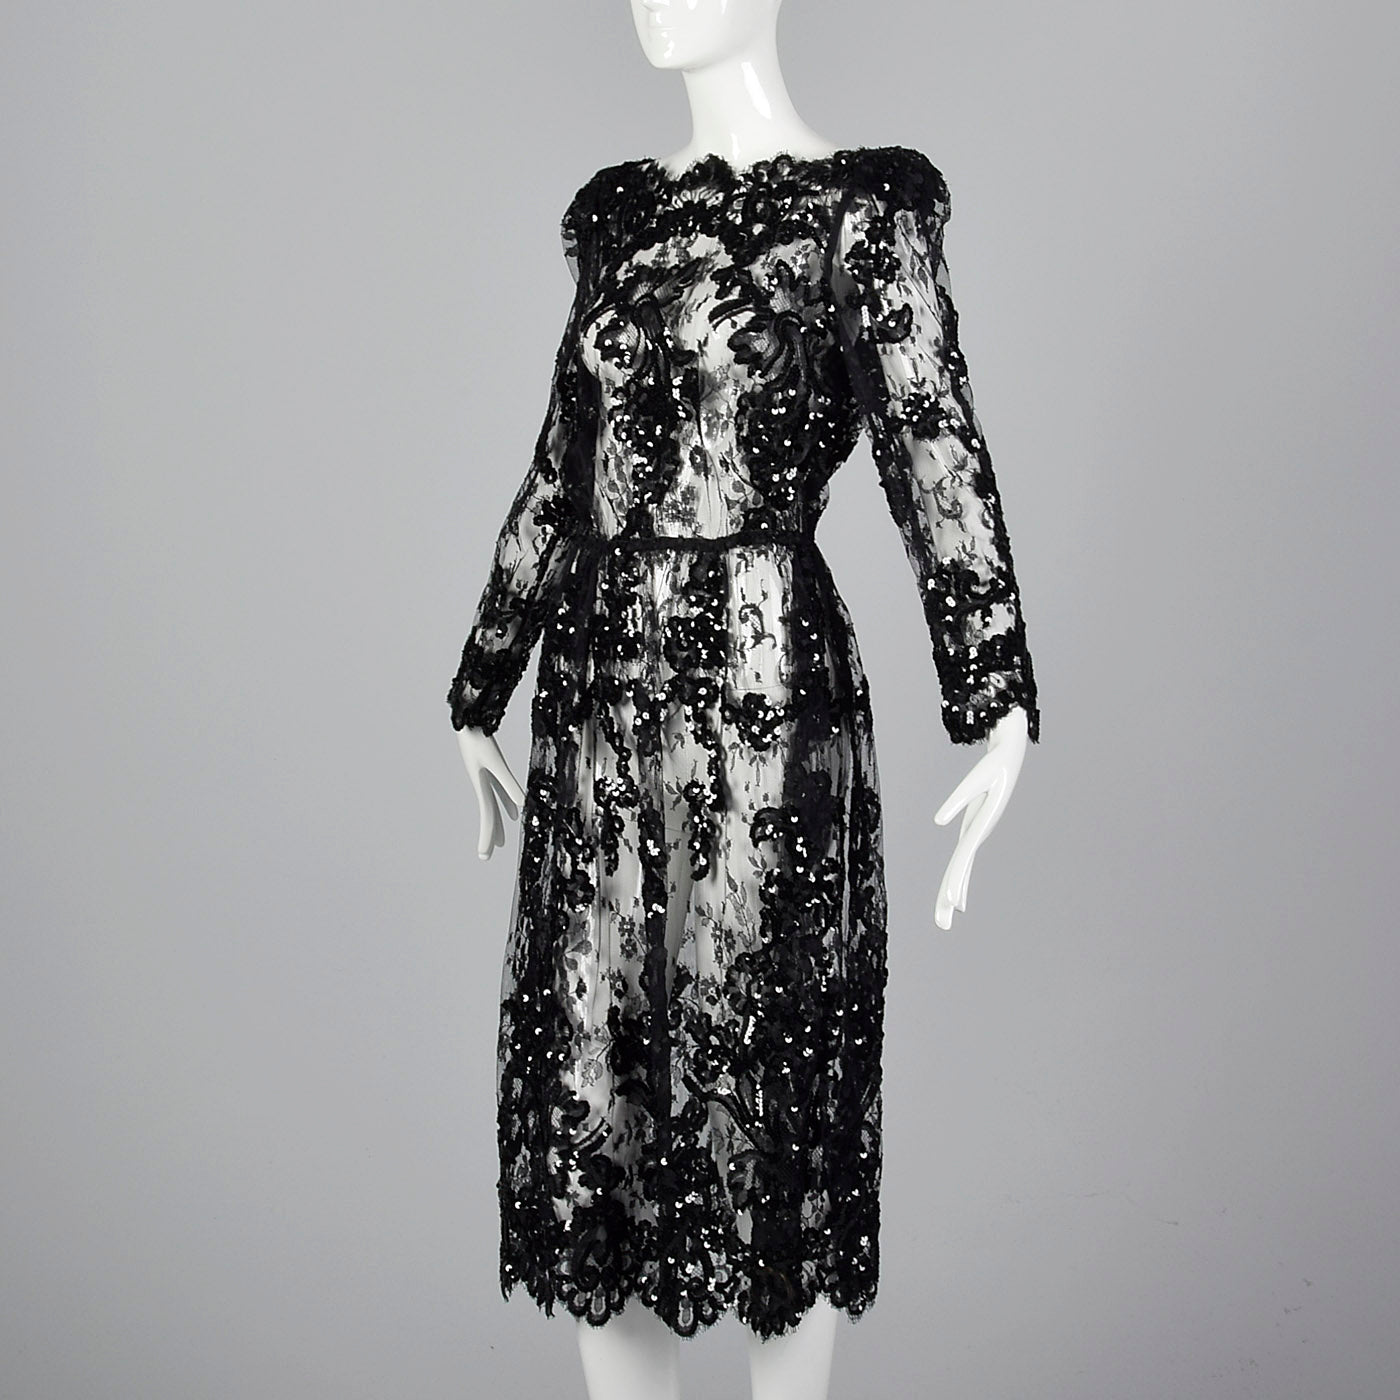 1980s Sheer Black Lace Dress with Sequins & Scalloped Hem